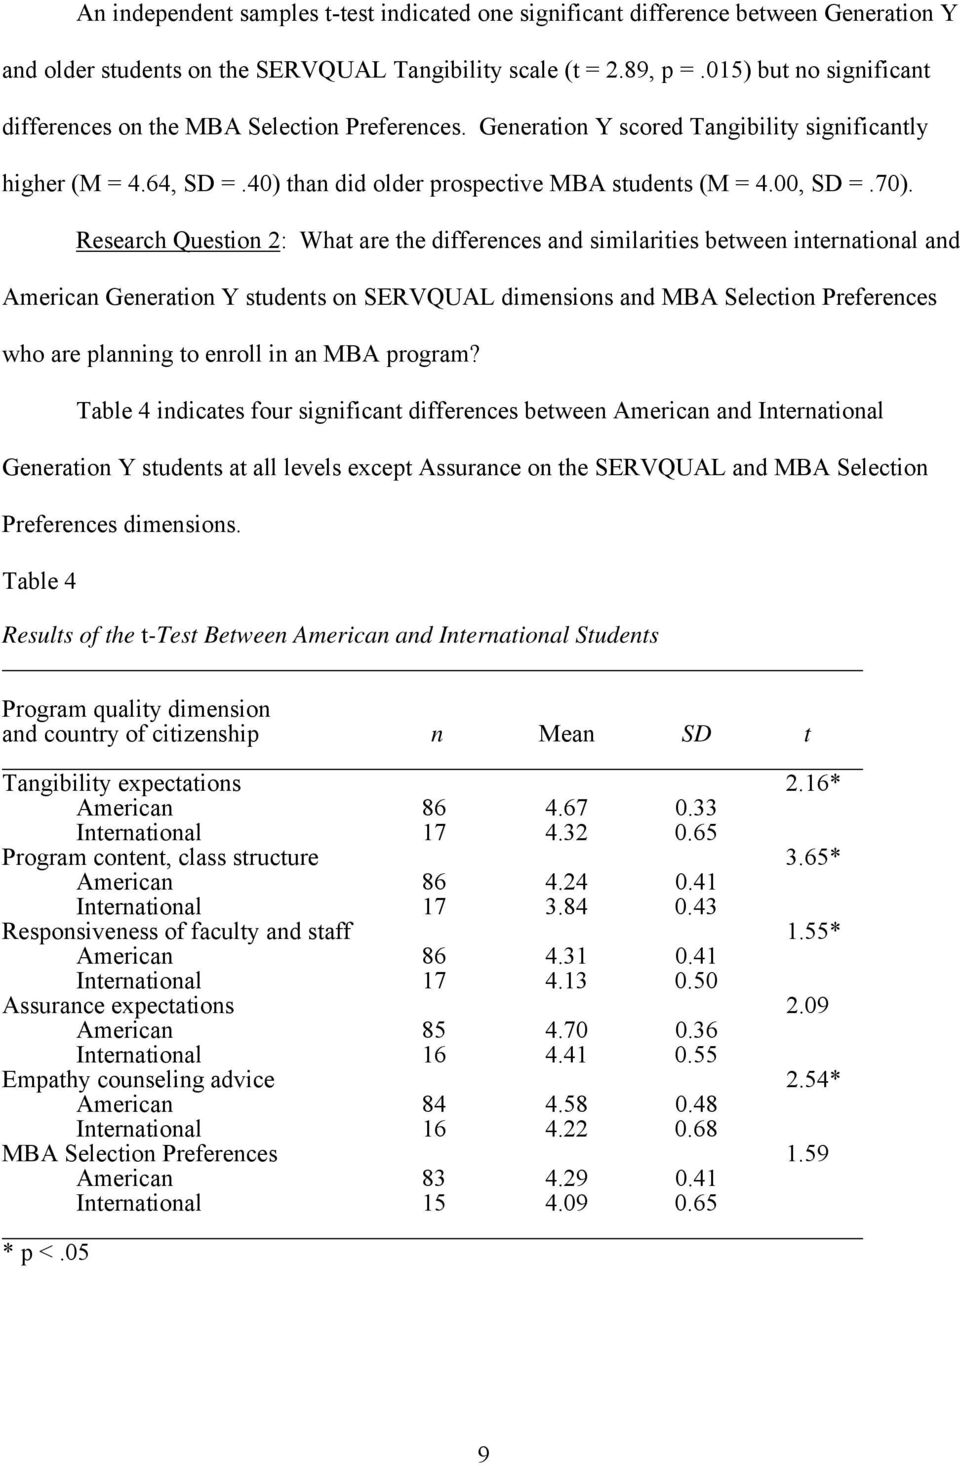 70). Research Question 2: What are the differences and similarities between international and American Generation Y students on SERVQUAL dimensions and MBA Selection Preferences who are planning to